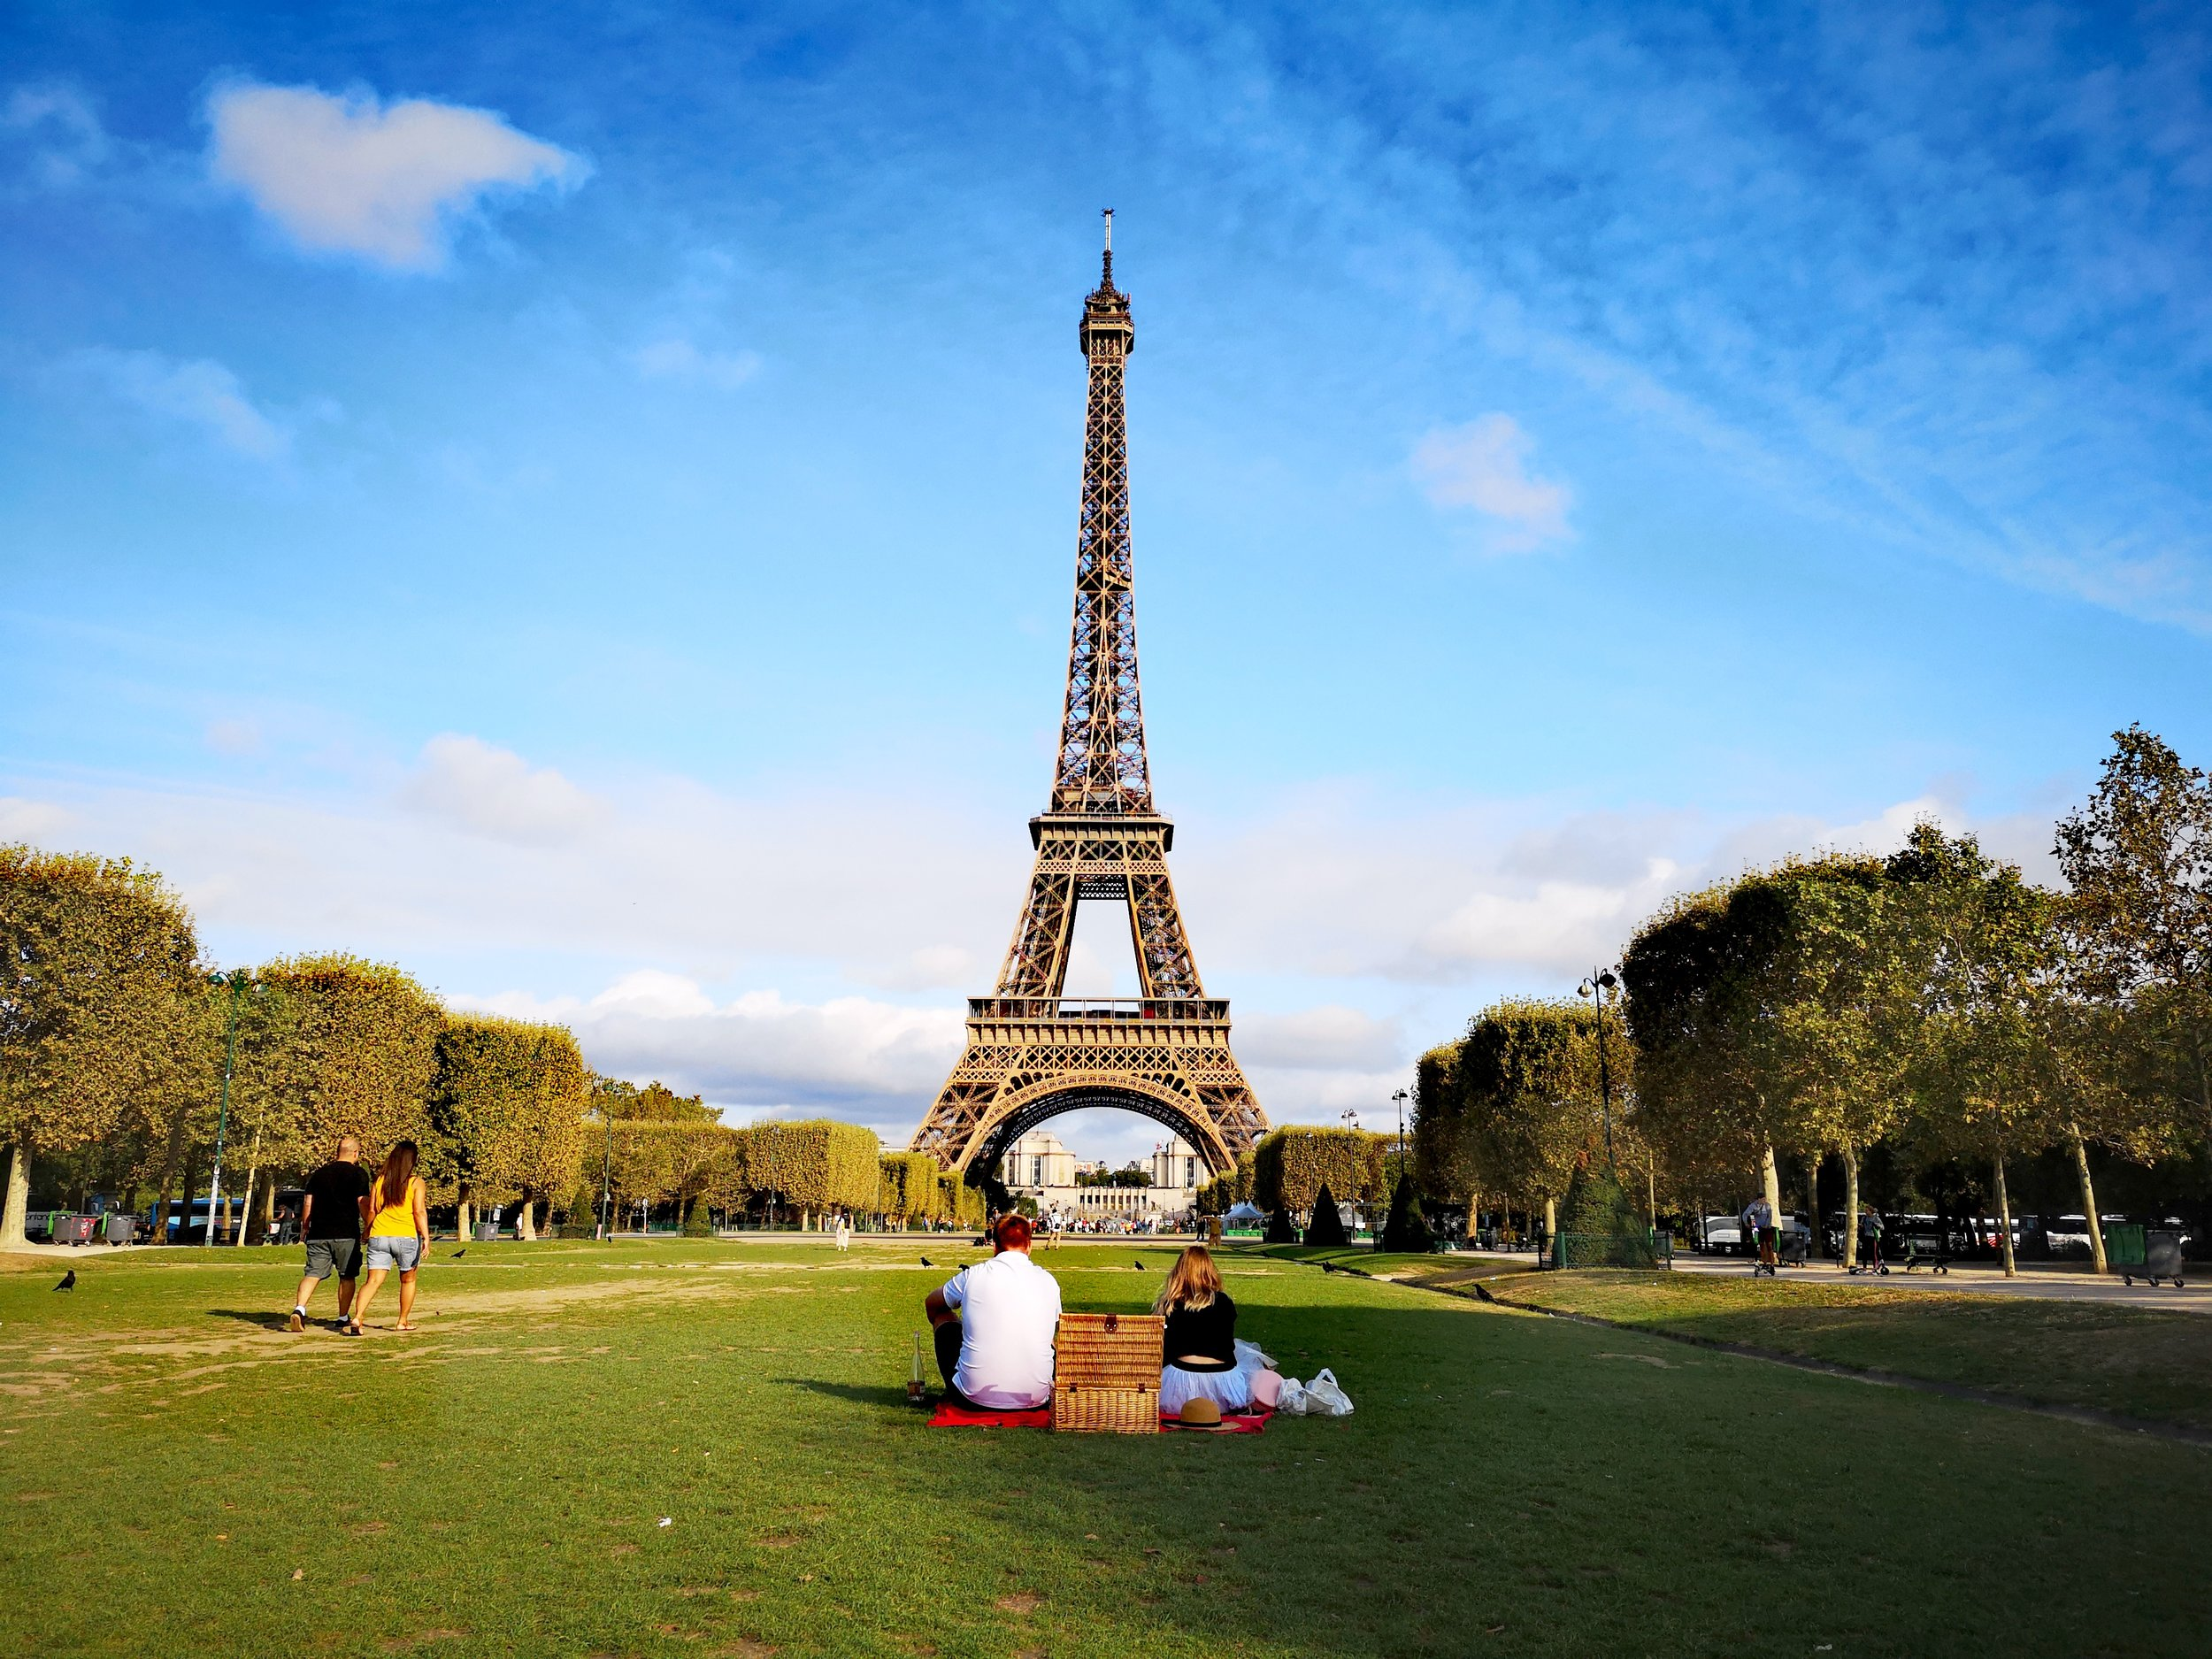 Eiffel Tower Guided Tour 36€